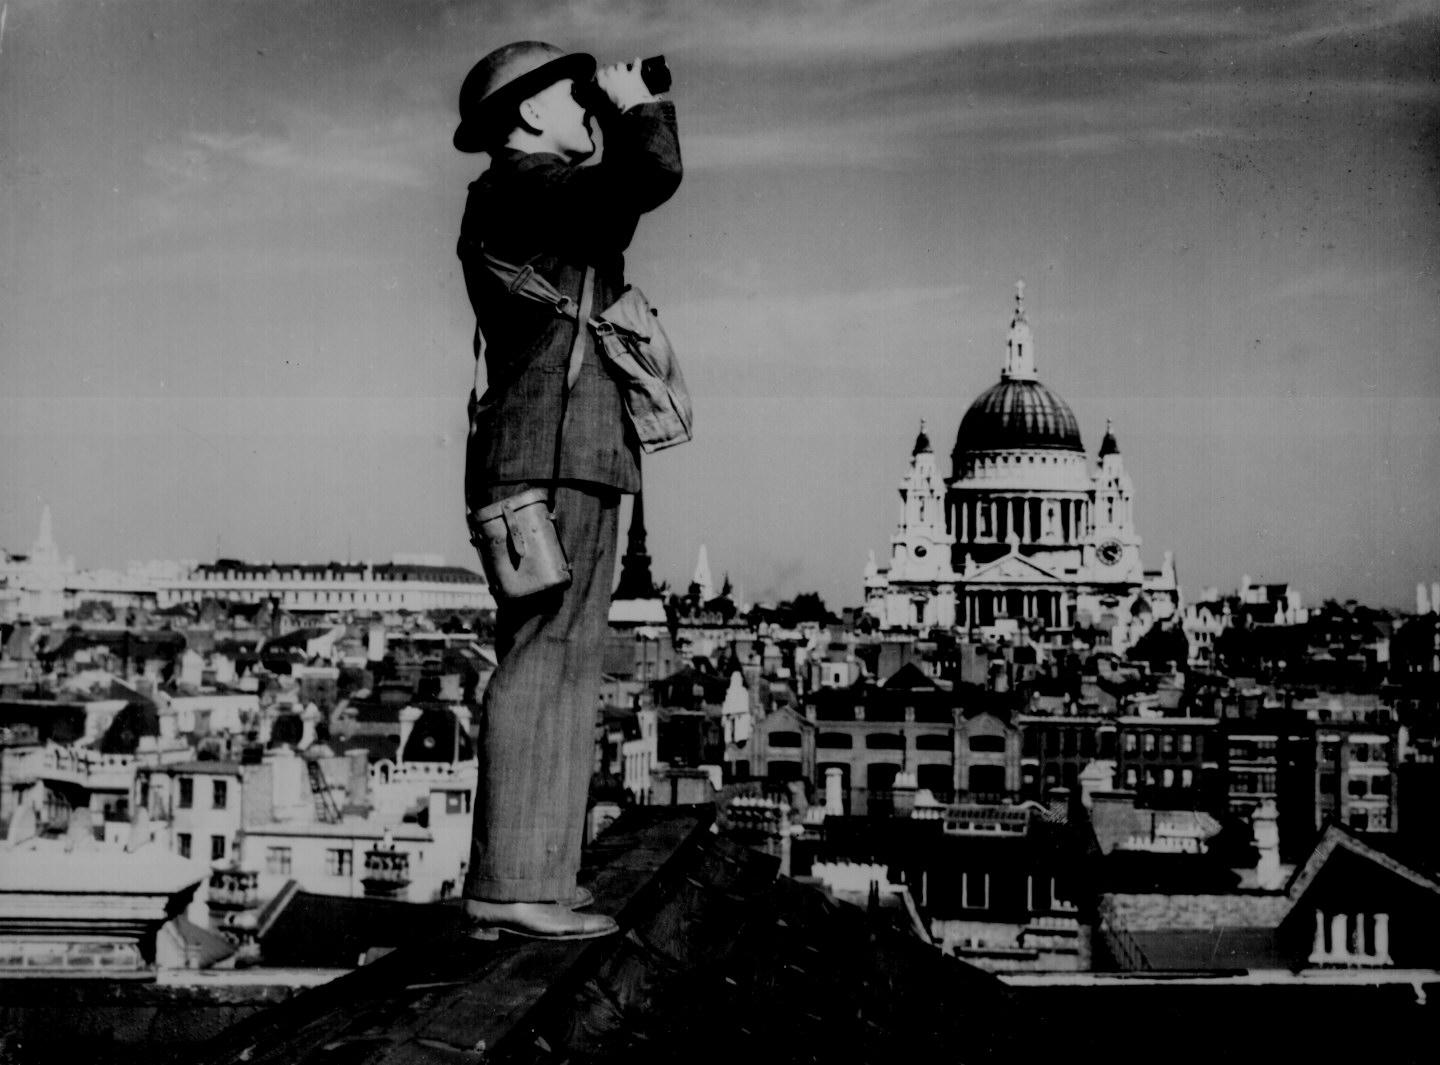 Here is an aircraft spotter on the roof of a building in London ...